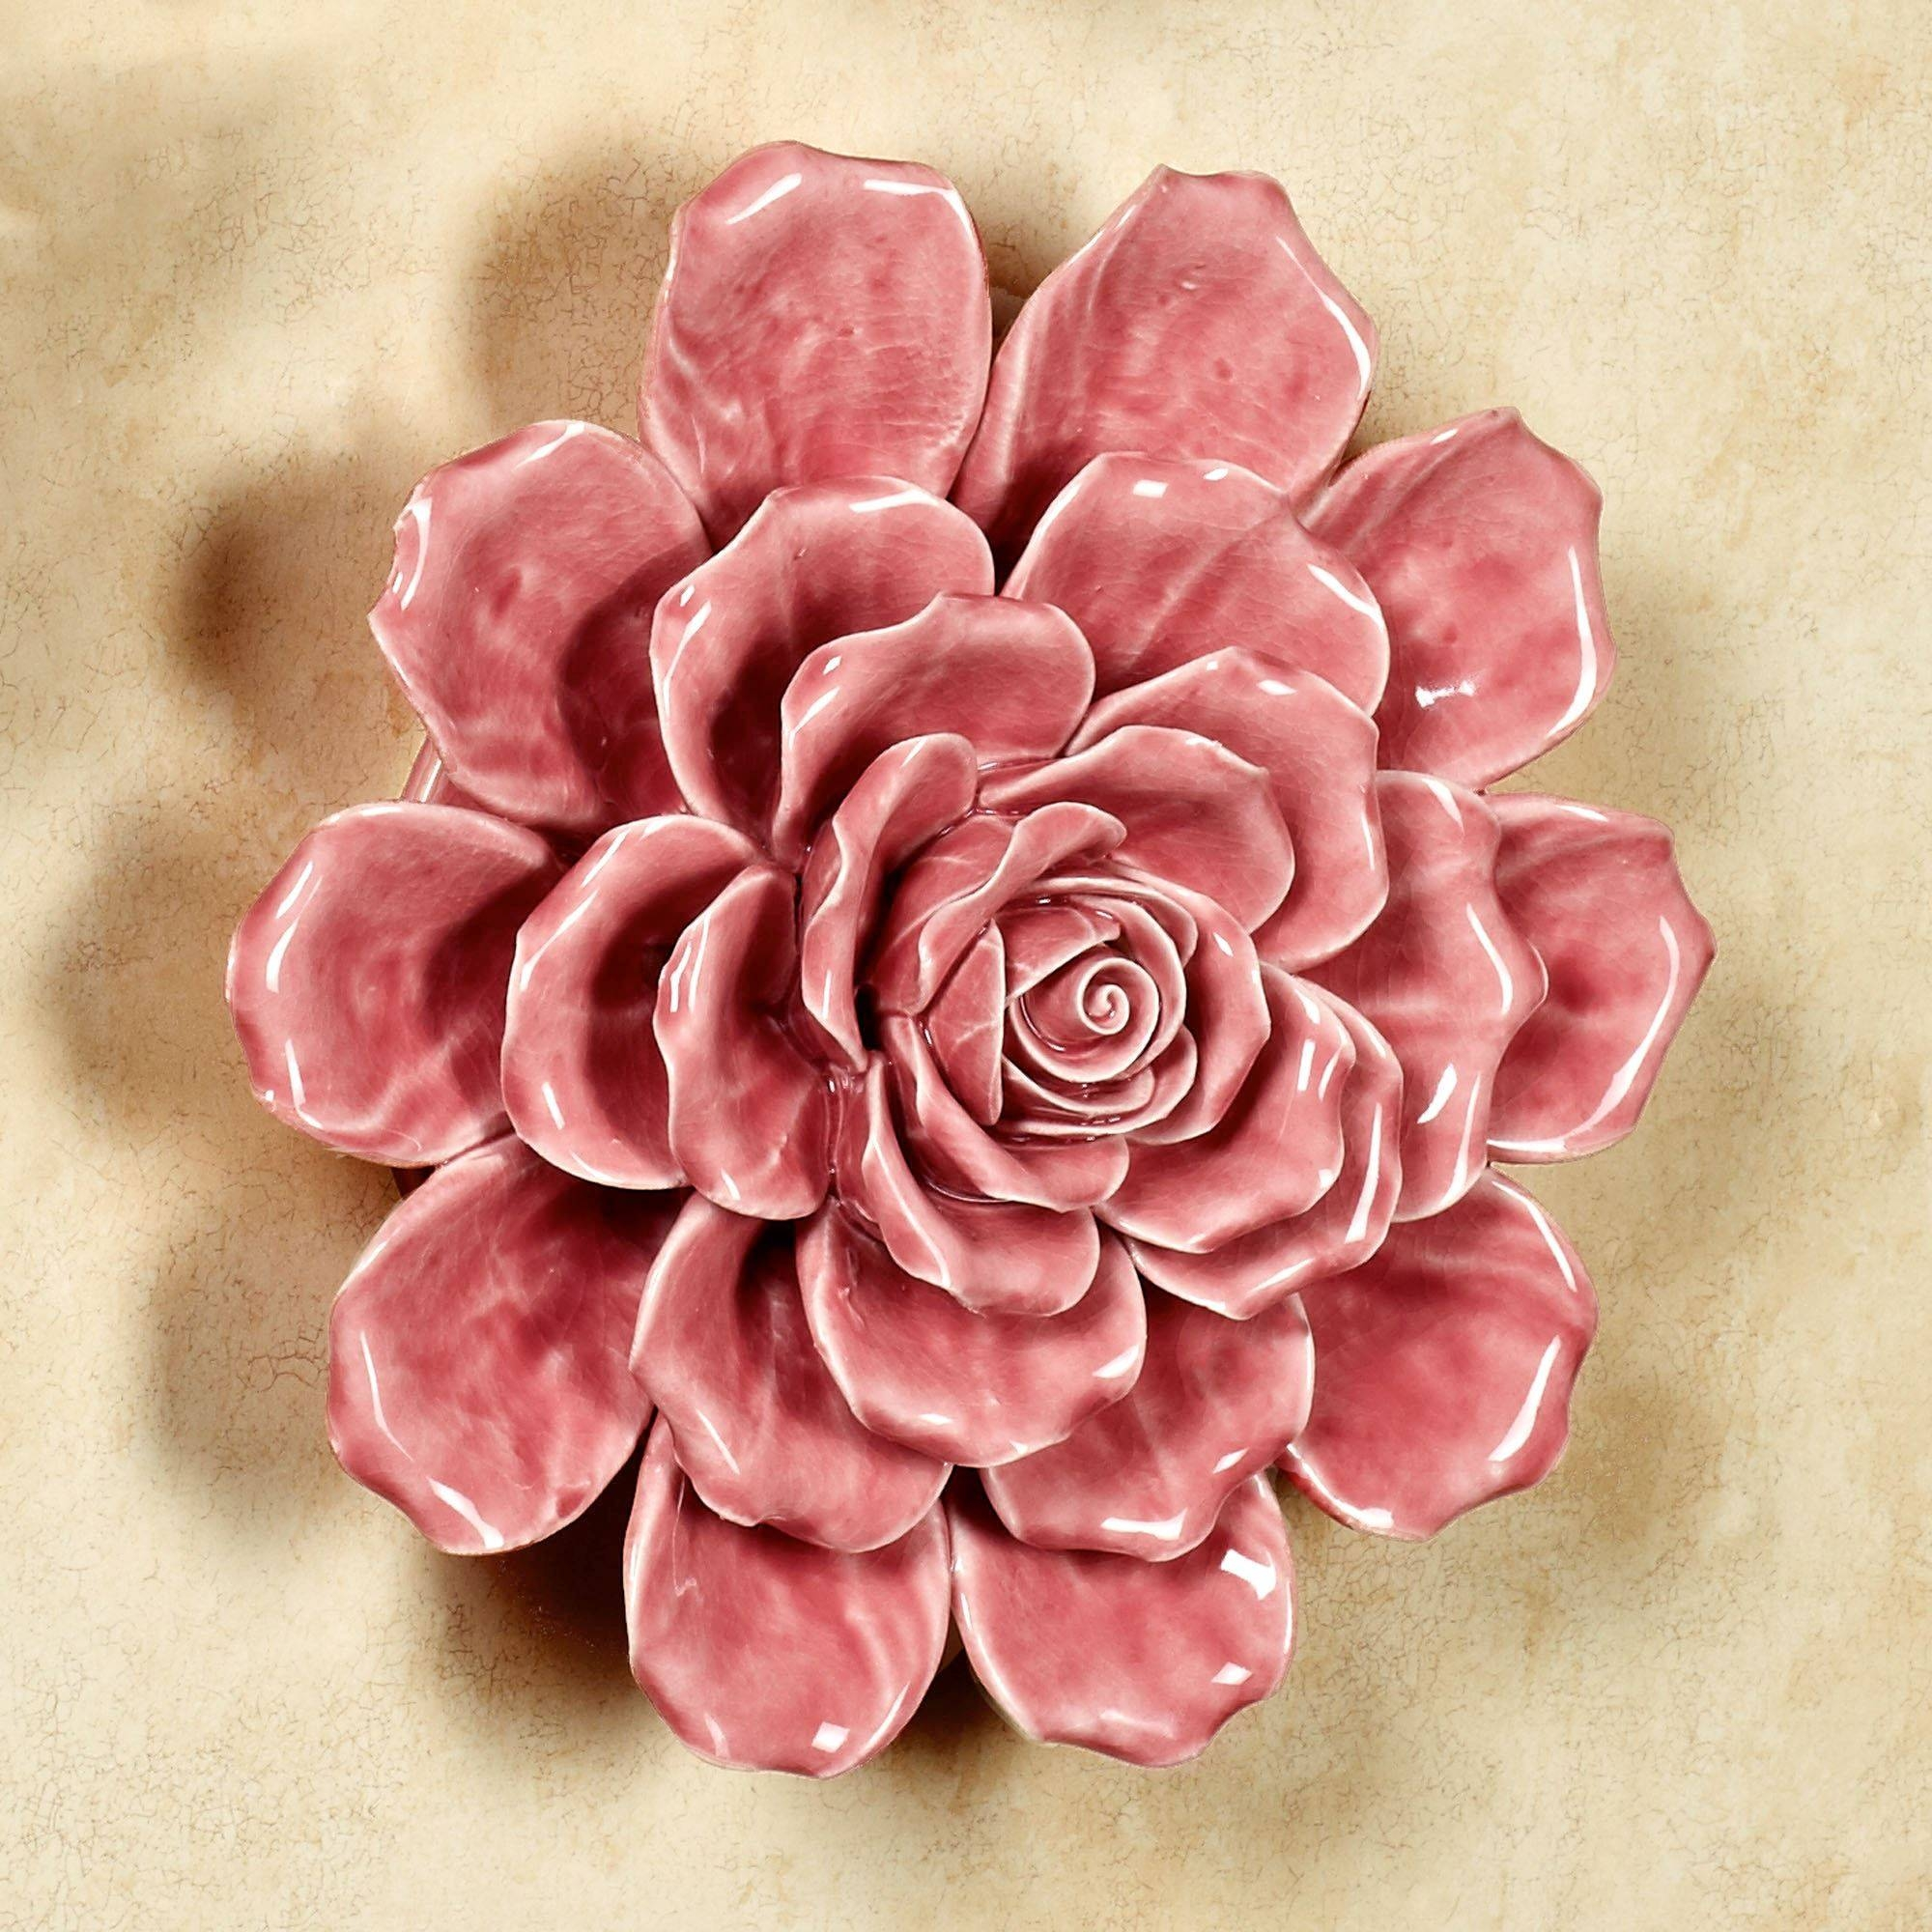 Isabella Ceramic Flower Blossom Wall Art Pertaining To 2018 Ceramic Flower Wall Art (Gallery 9 of 30)